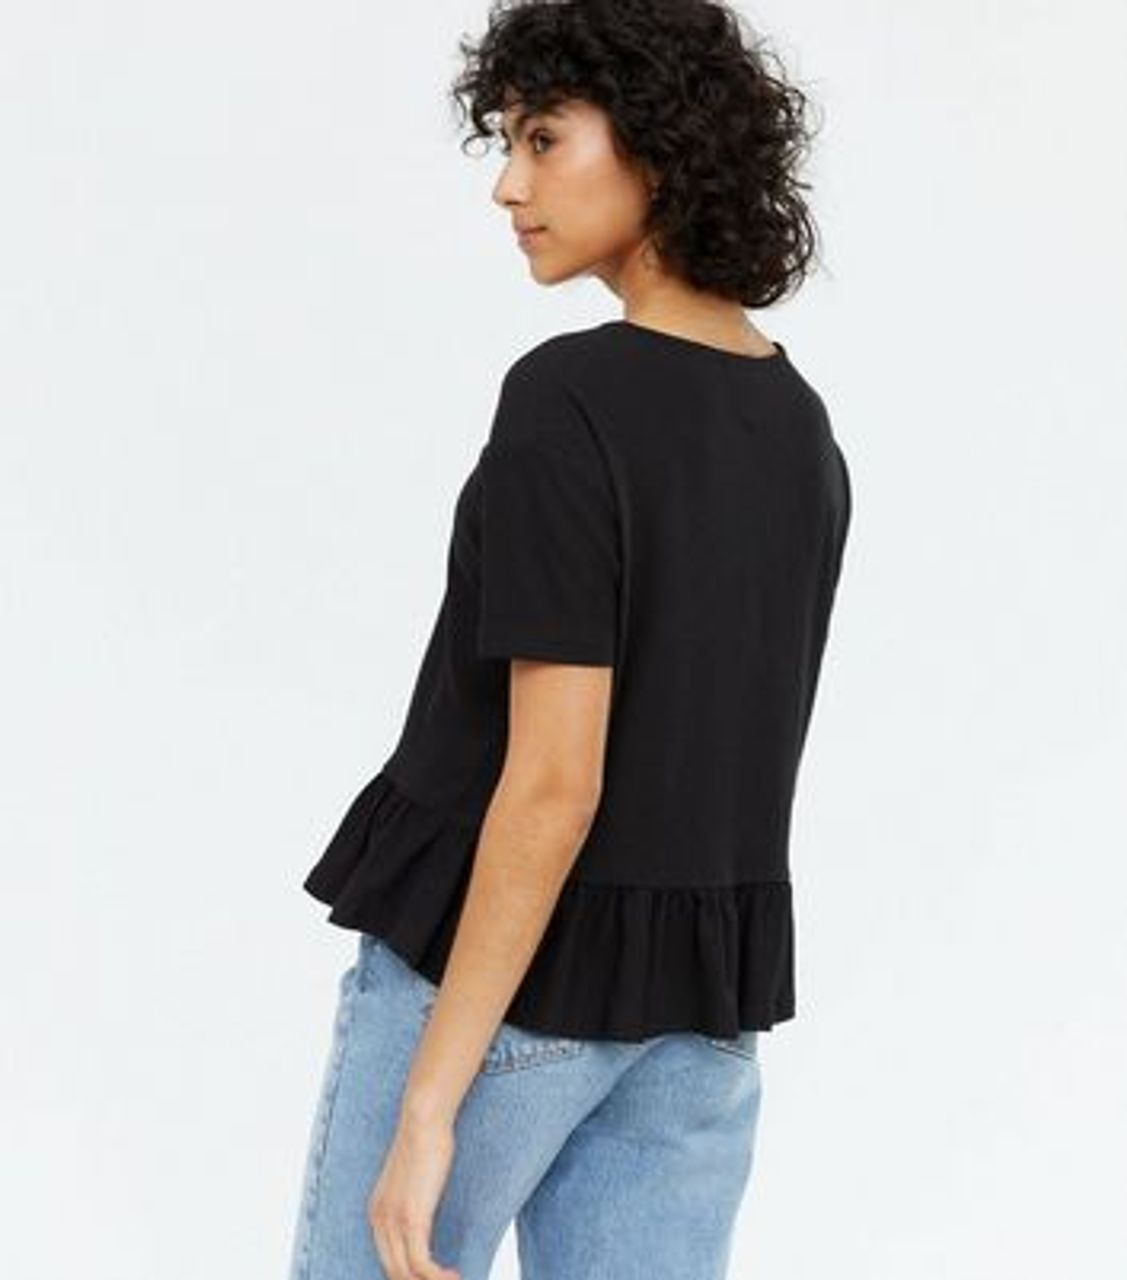 Fashion New Look Tops and Shirts for Women nanoceramicprotect.com ...